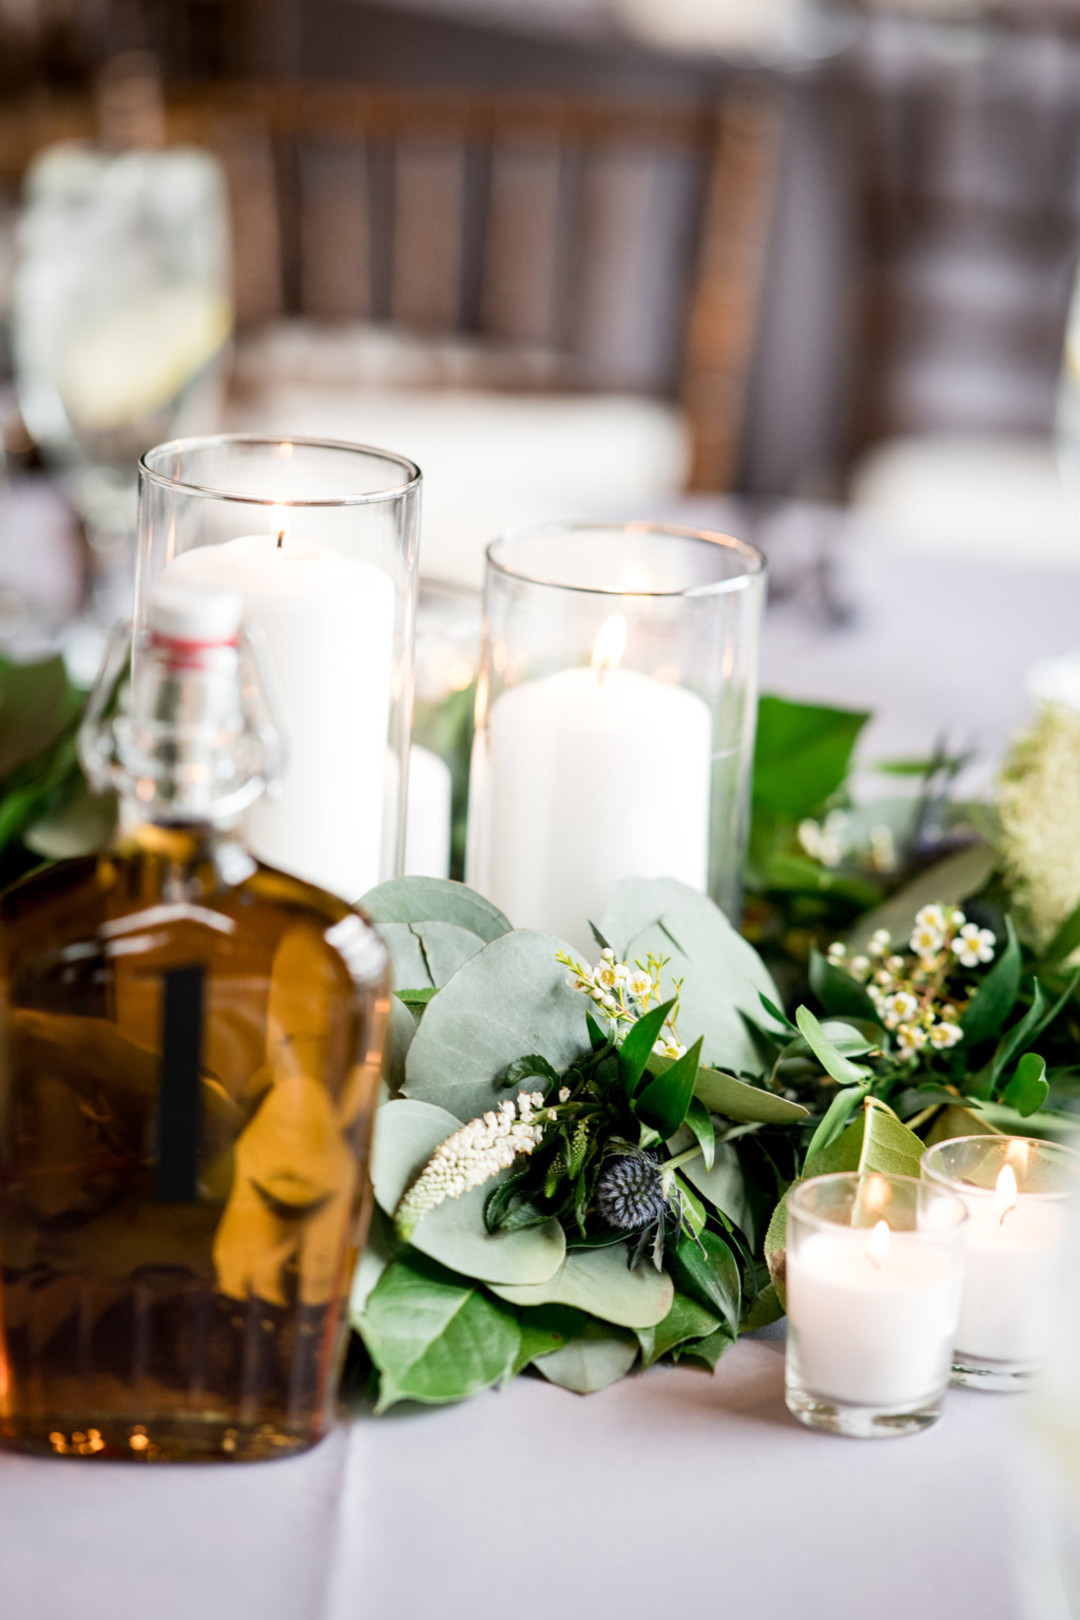 Floral and Candle Elegant Centerpiece Chicago Wedding Julia Franzosa Photography